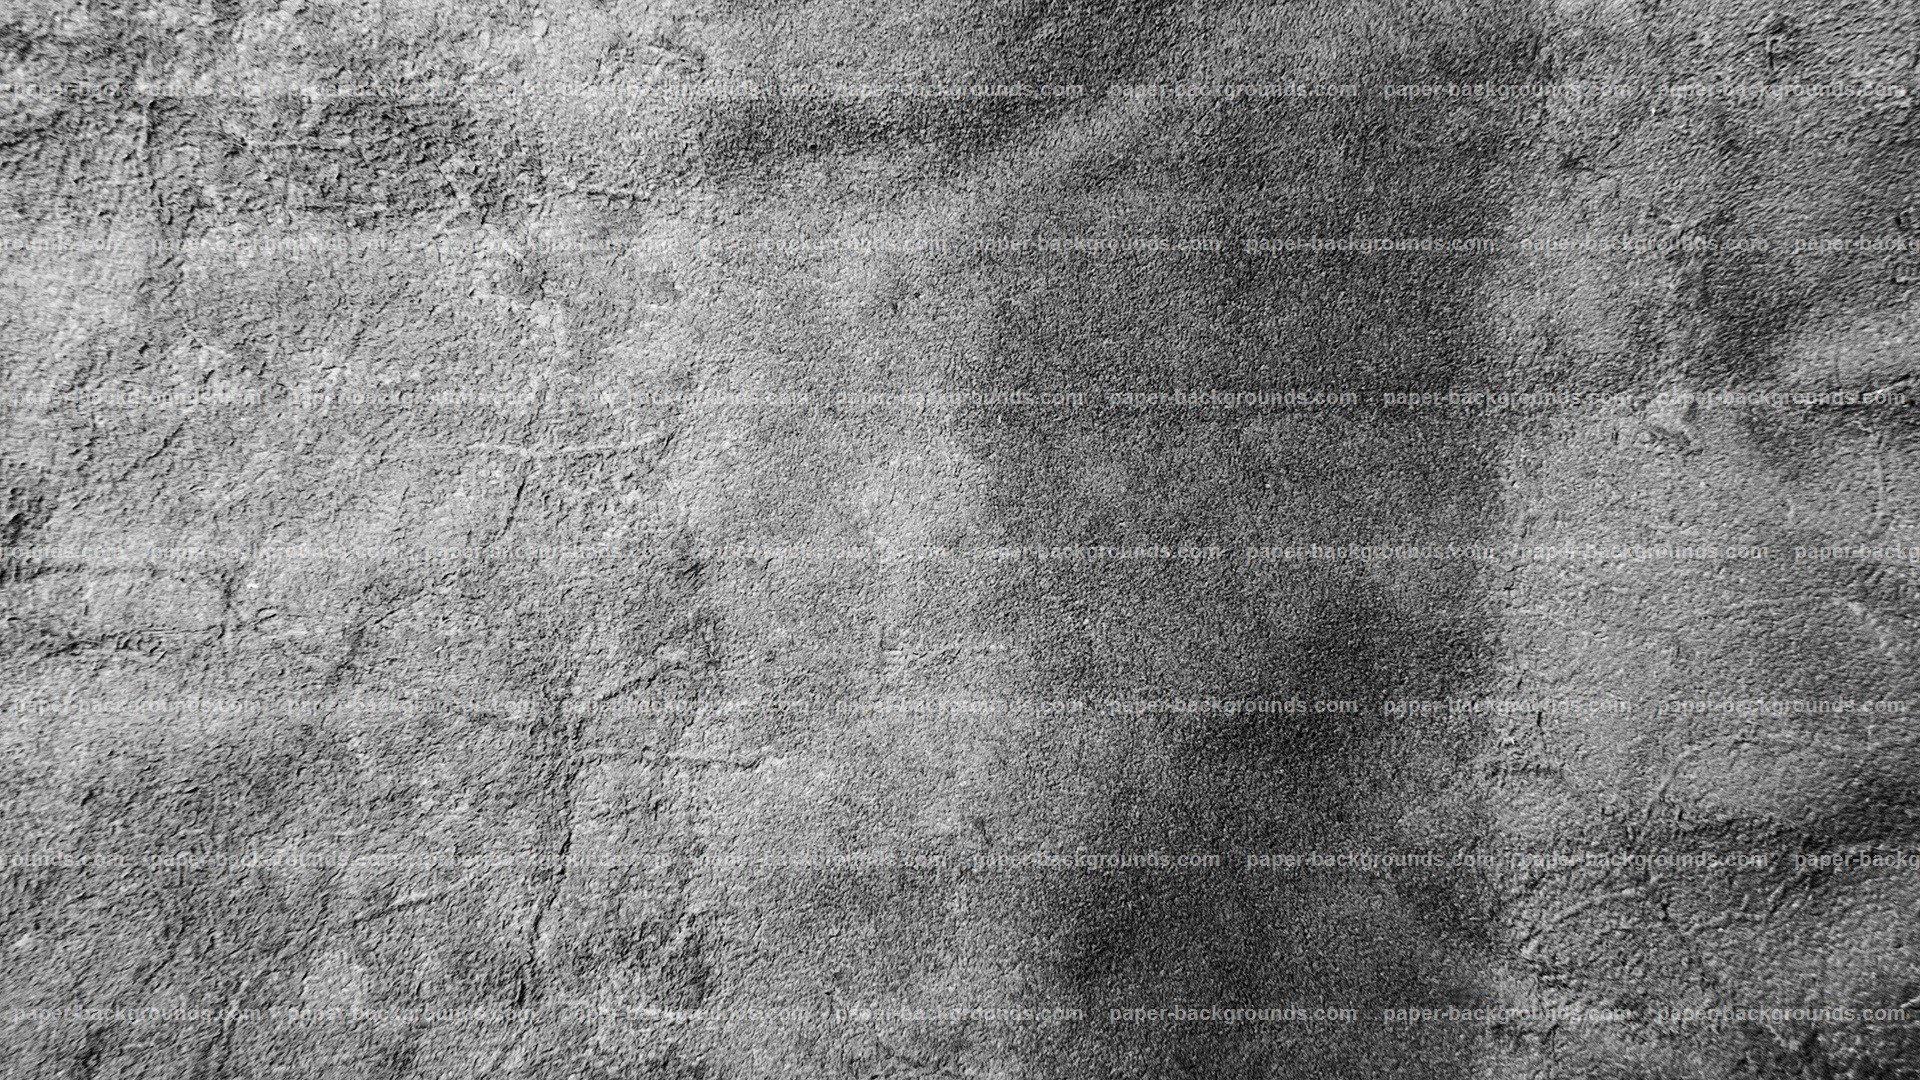 1920x1080 Paper Backgrounds | Gray Grunge Soft Leather Texture Background HD